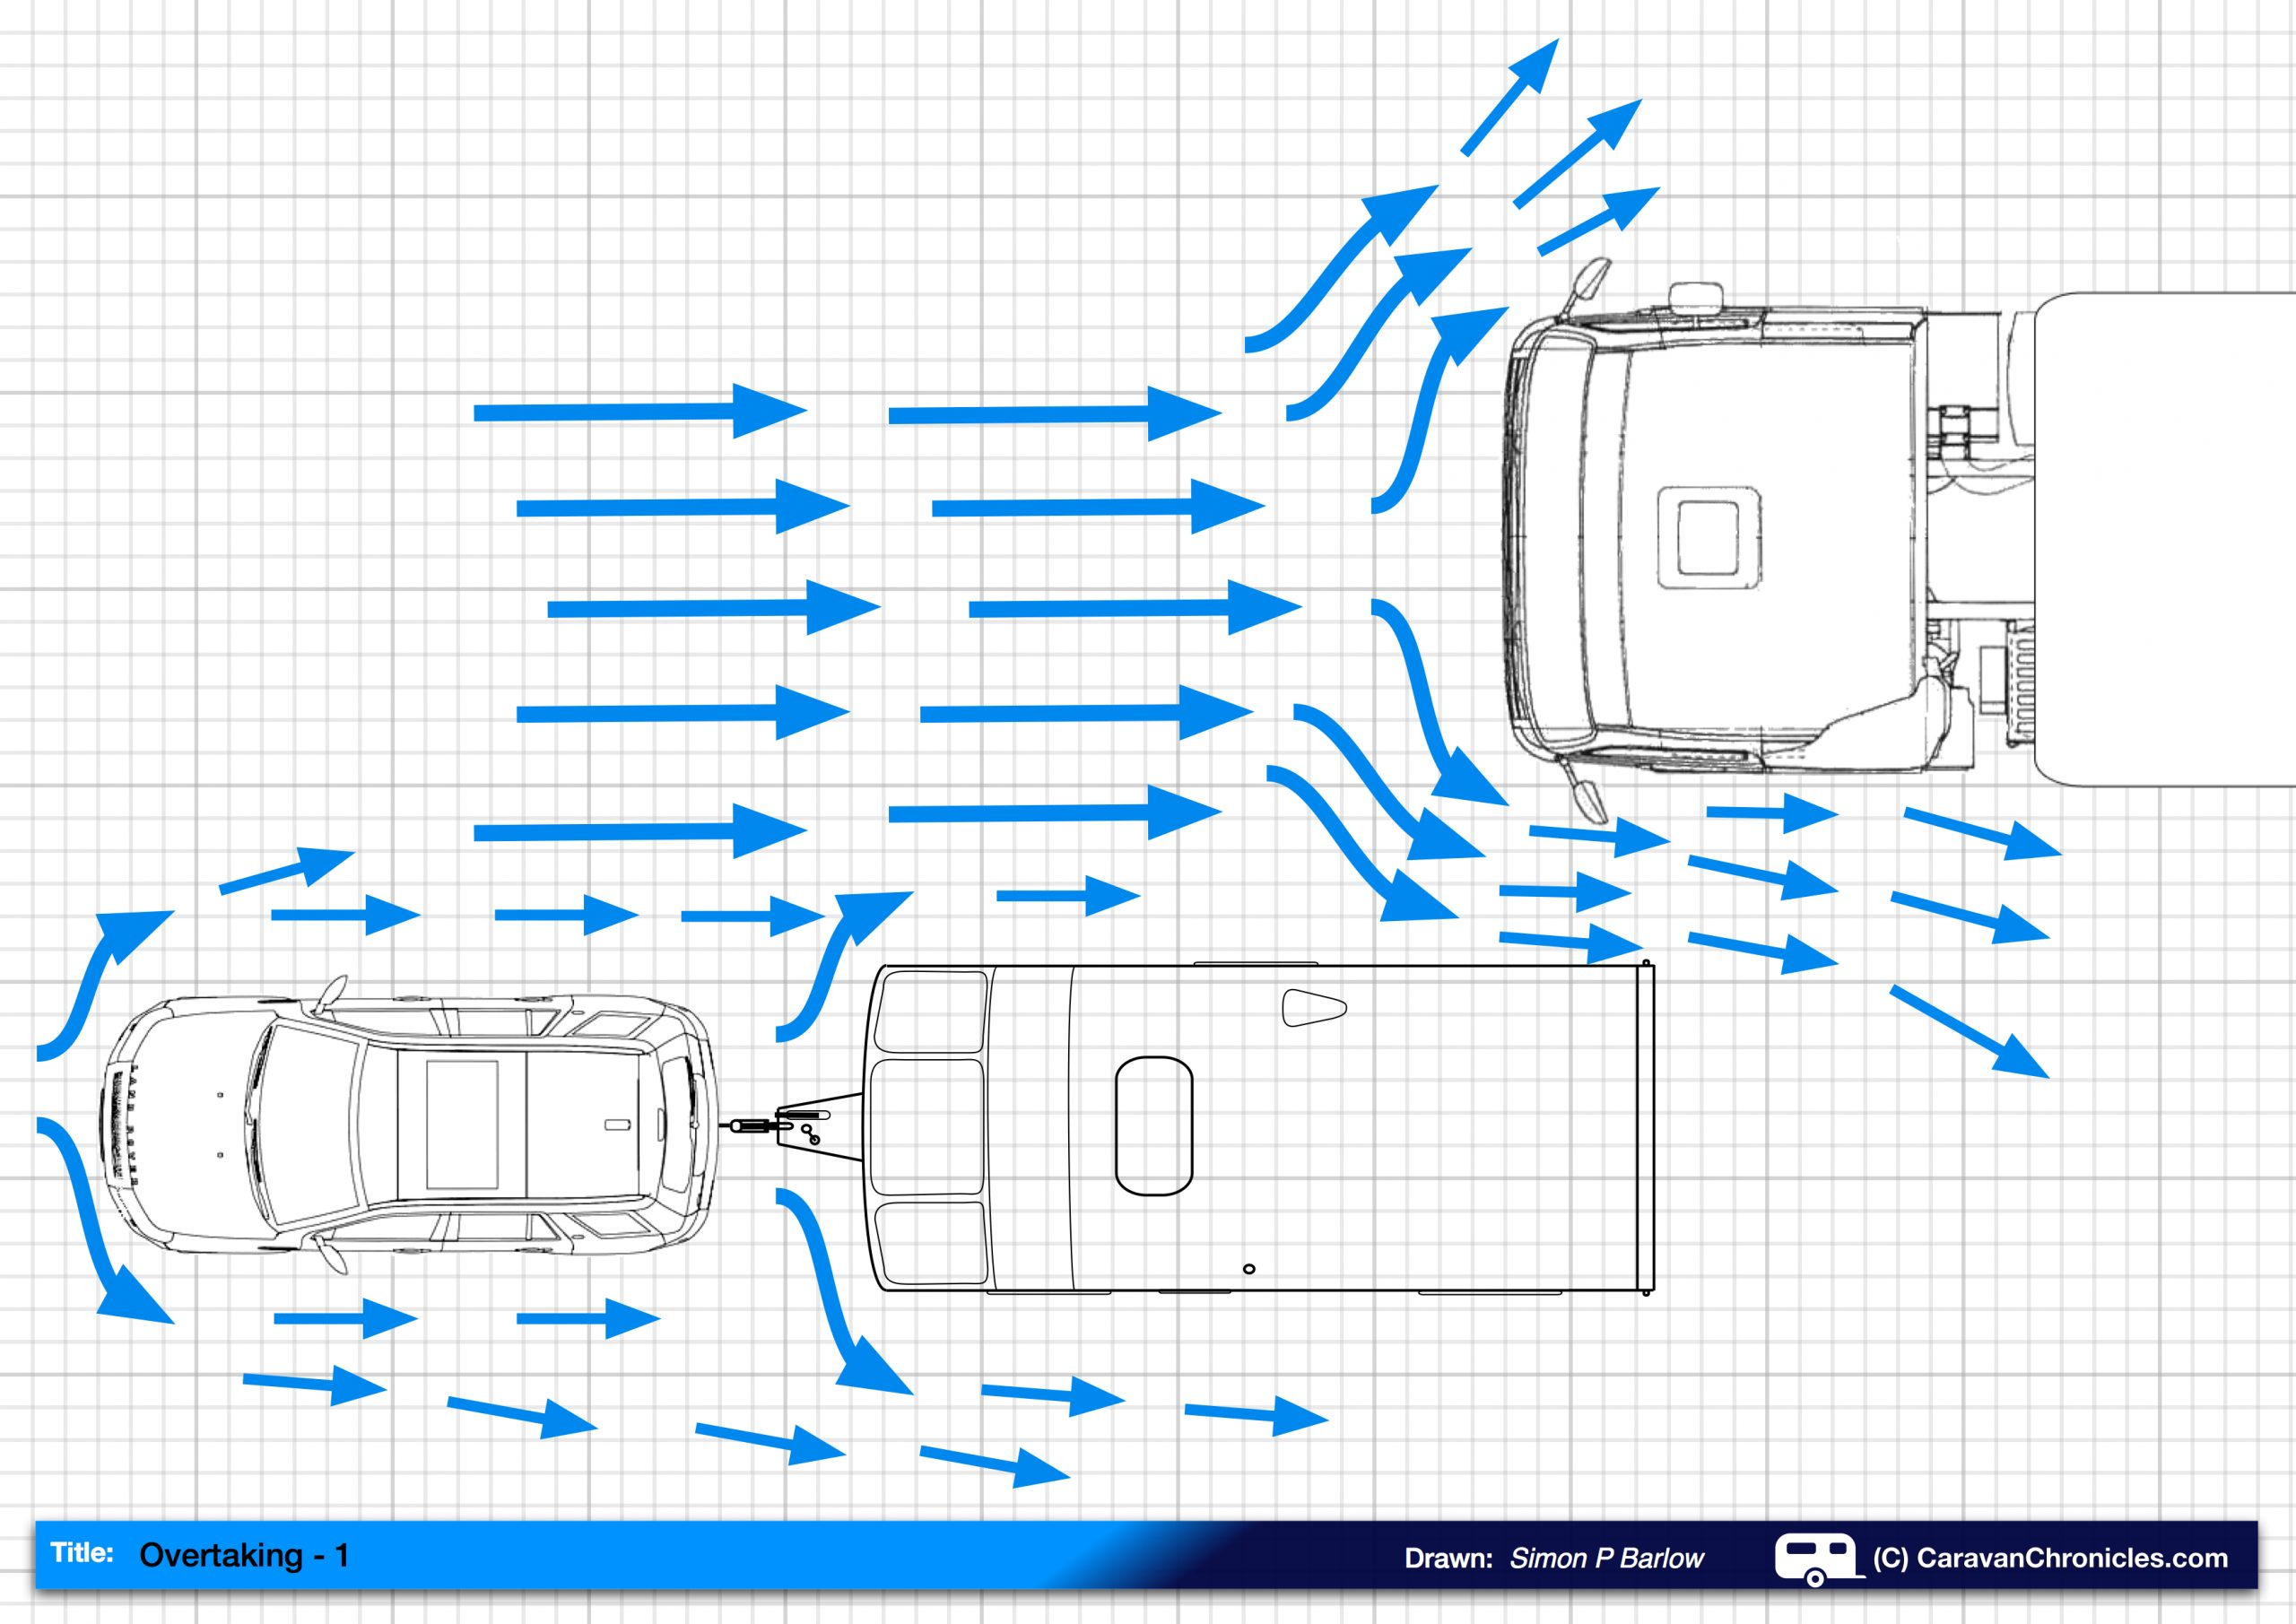 Dynamics Of Towing Overtaking 1